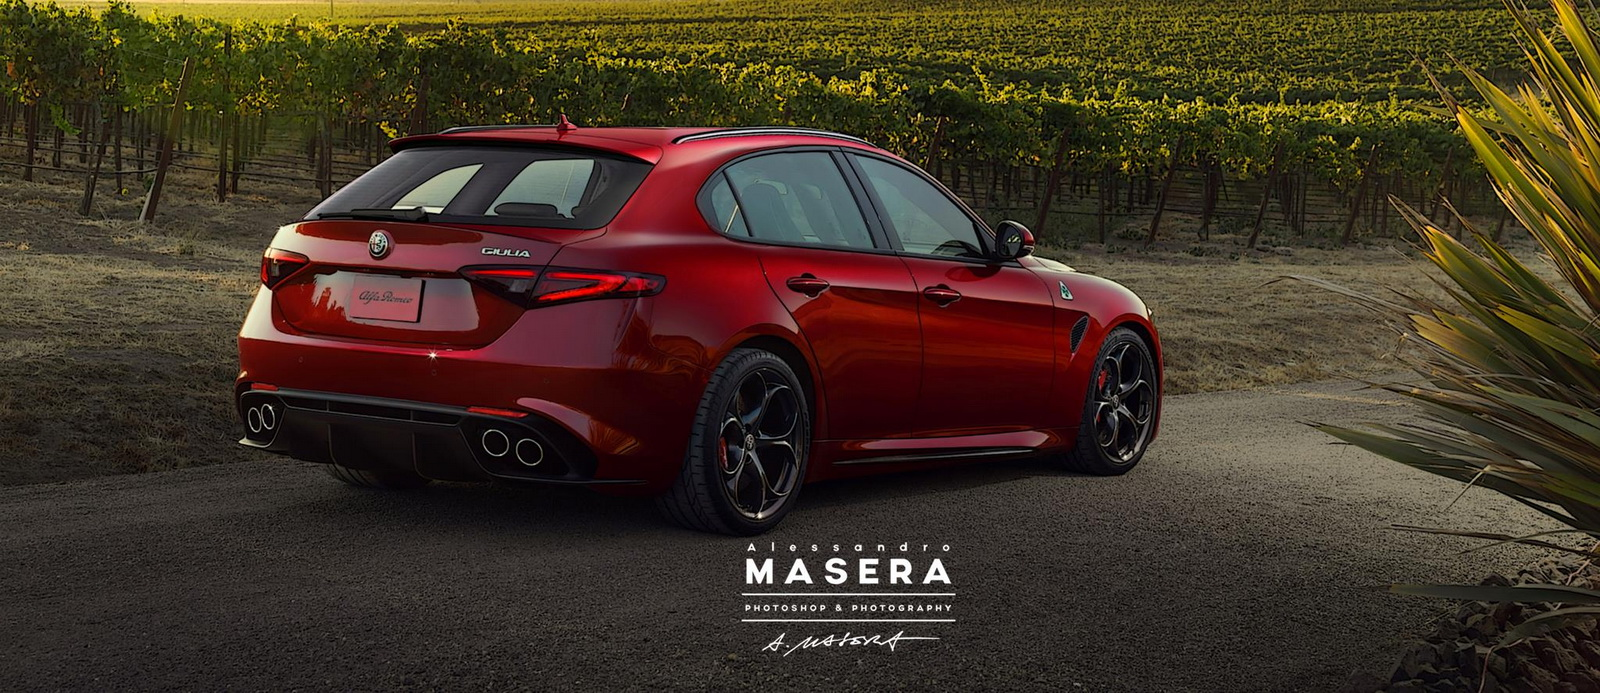 2018 Alfa Romeo Giulia  Exterior Review  Car and Driver